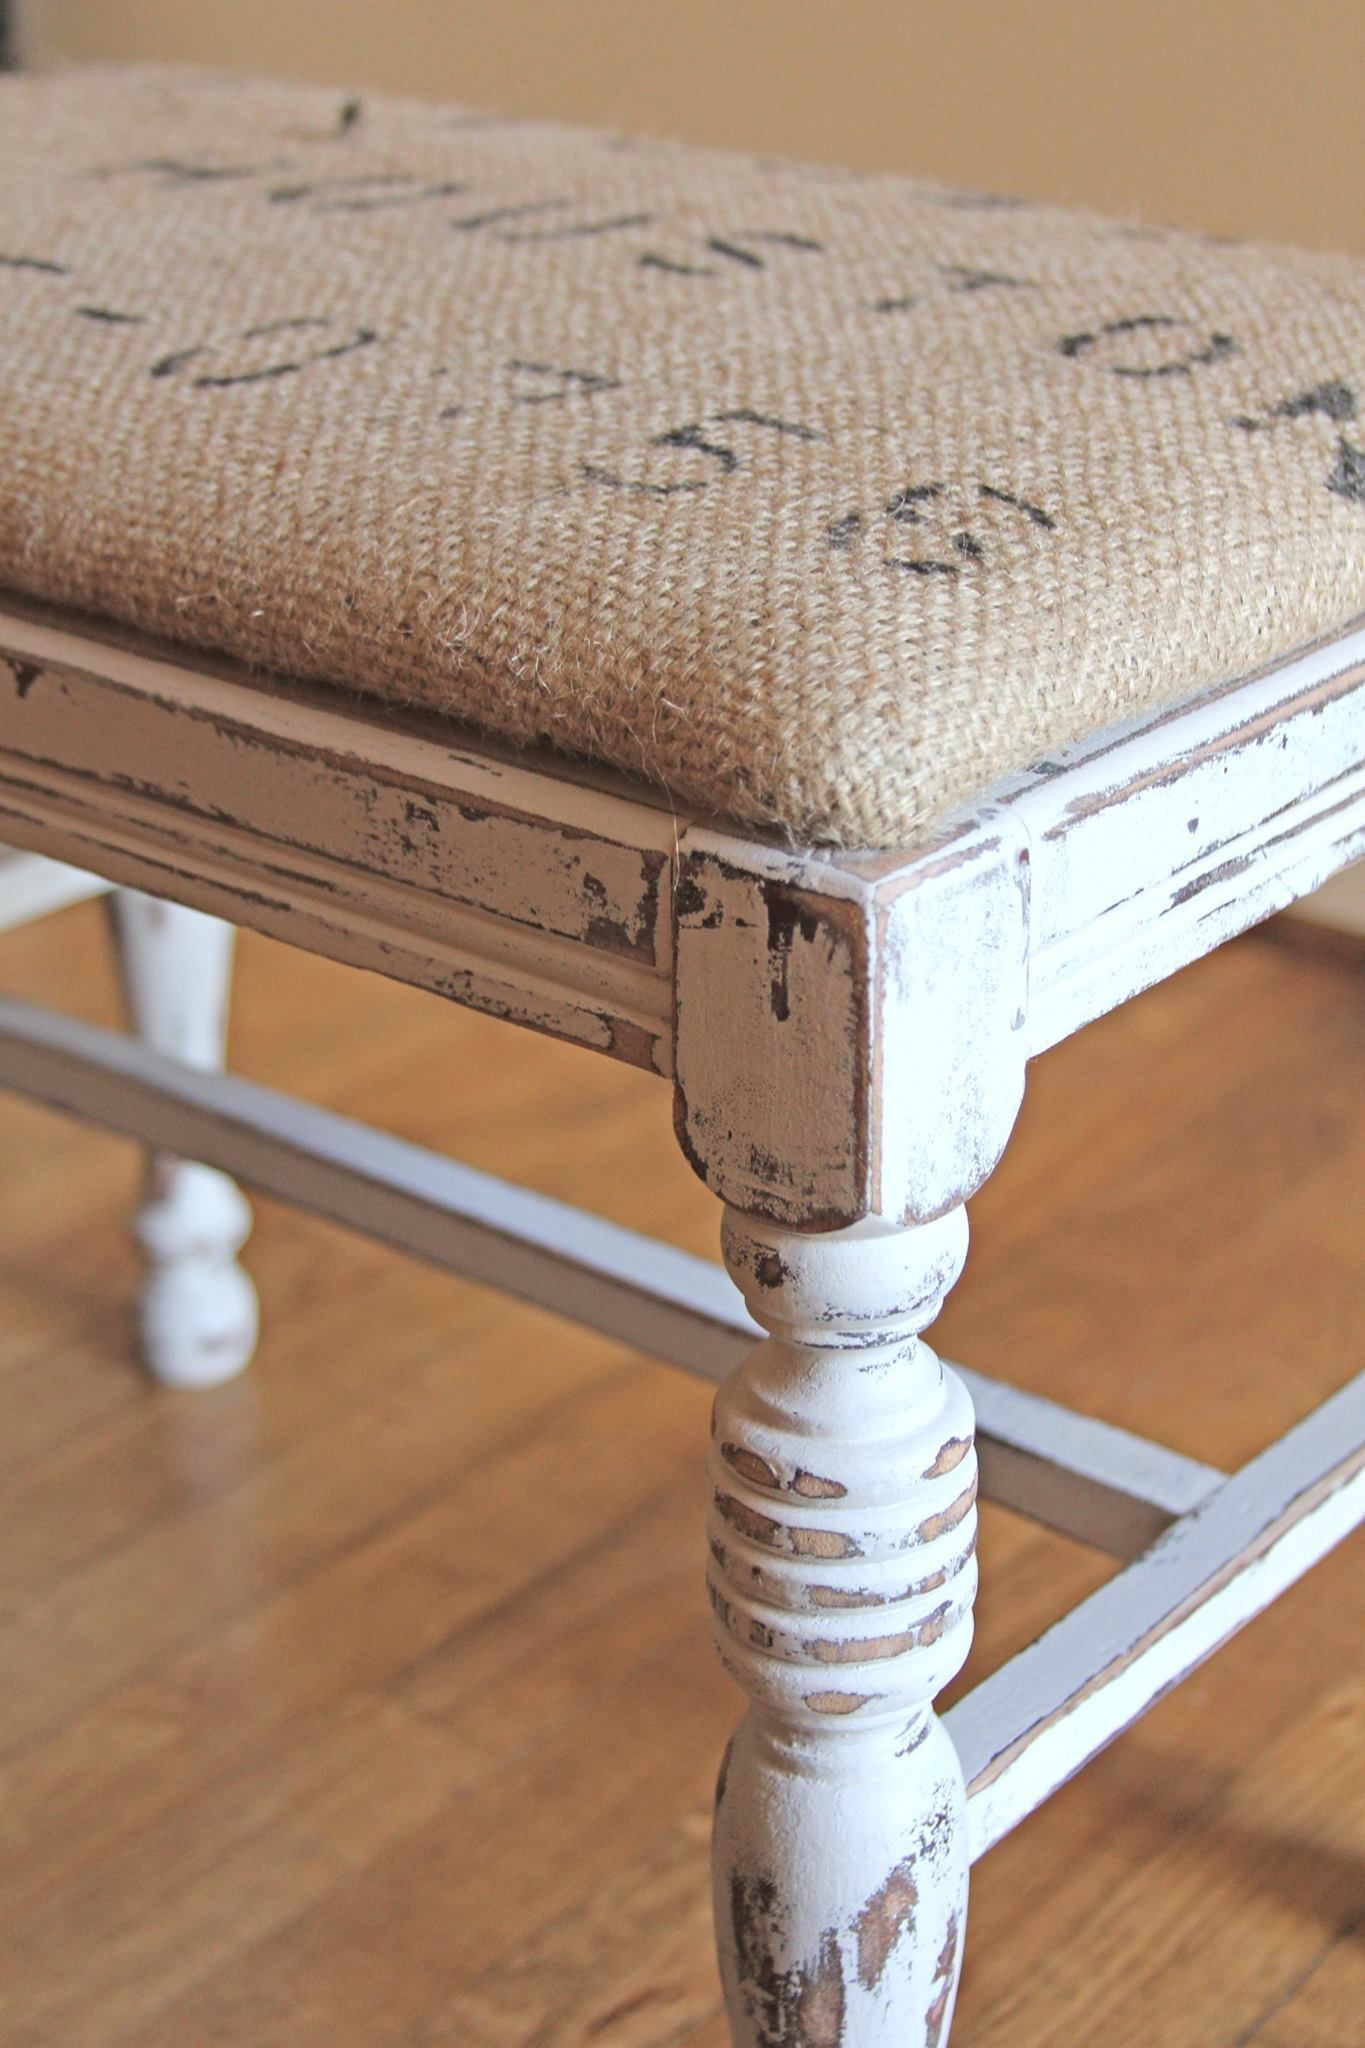 Distressed Vanity Stool Ottoman By The Evie May Available At Dusty Boot Designs In Kingwood Tx Shabby Chic Stool Furniture Makeover Farmhouse Style Furniture